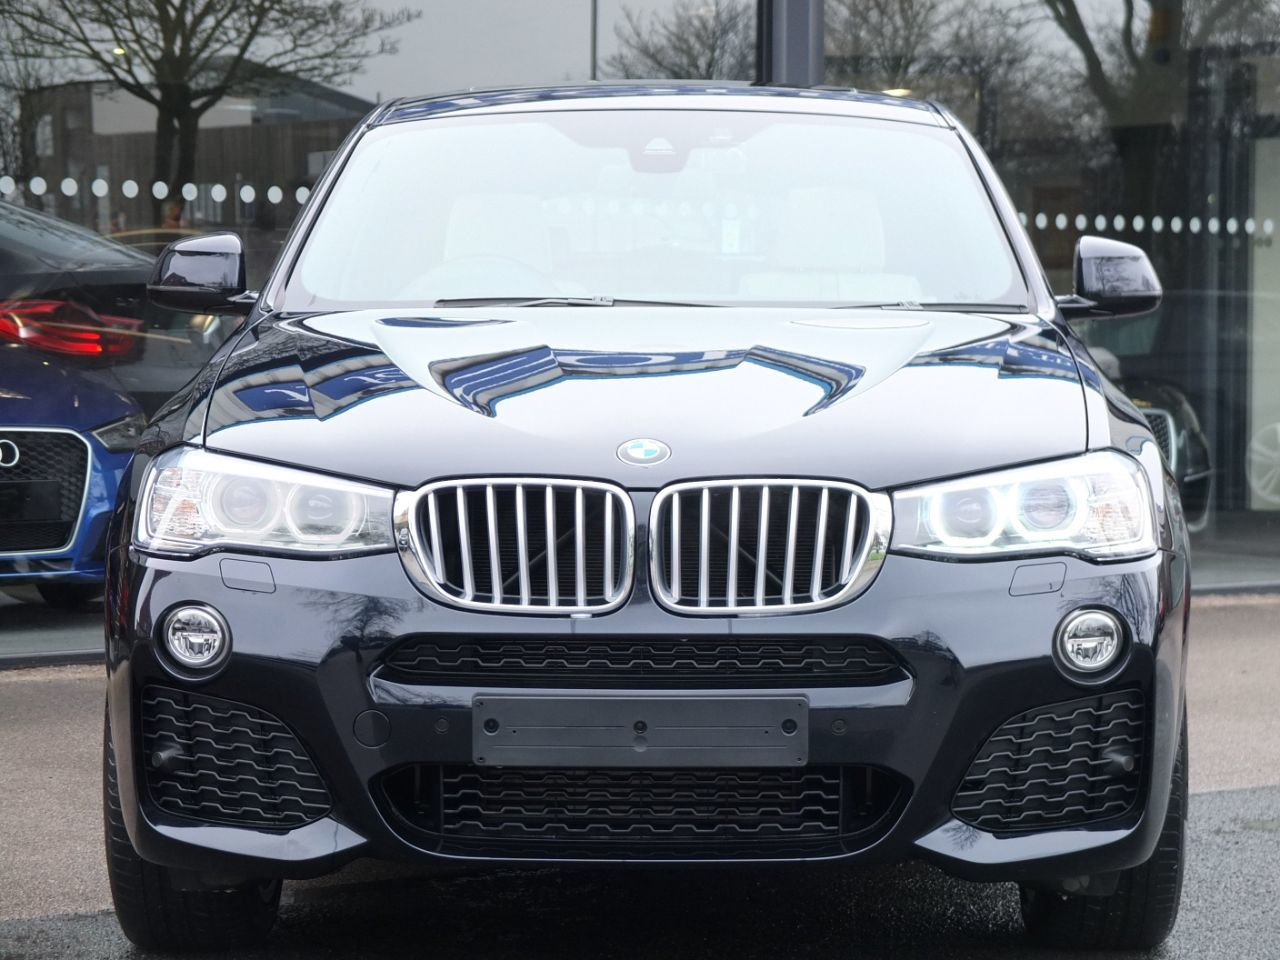 BMW X4 3.0 xDrive30d M Sport Auto Coupe Diesel Carbon Black Metallic